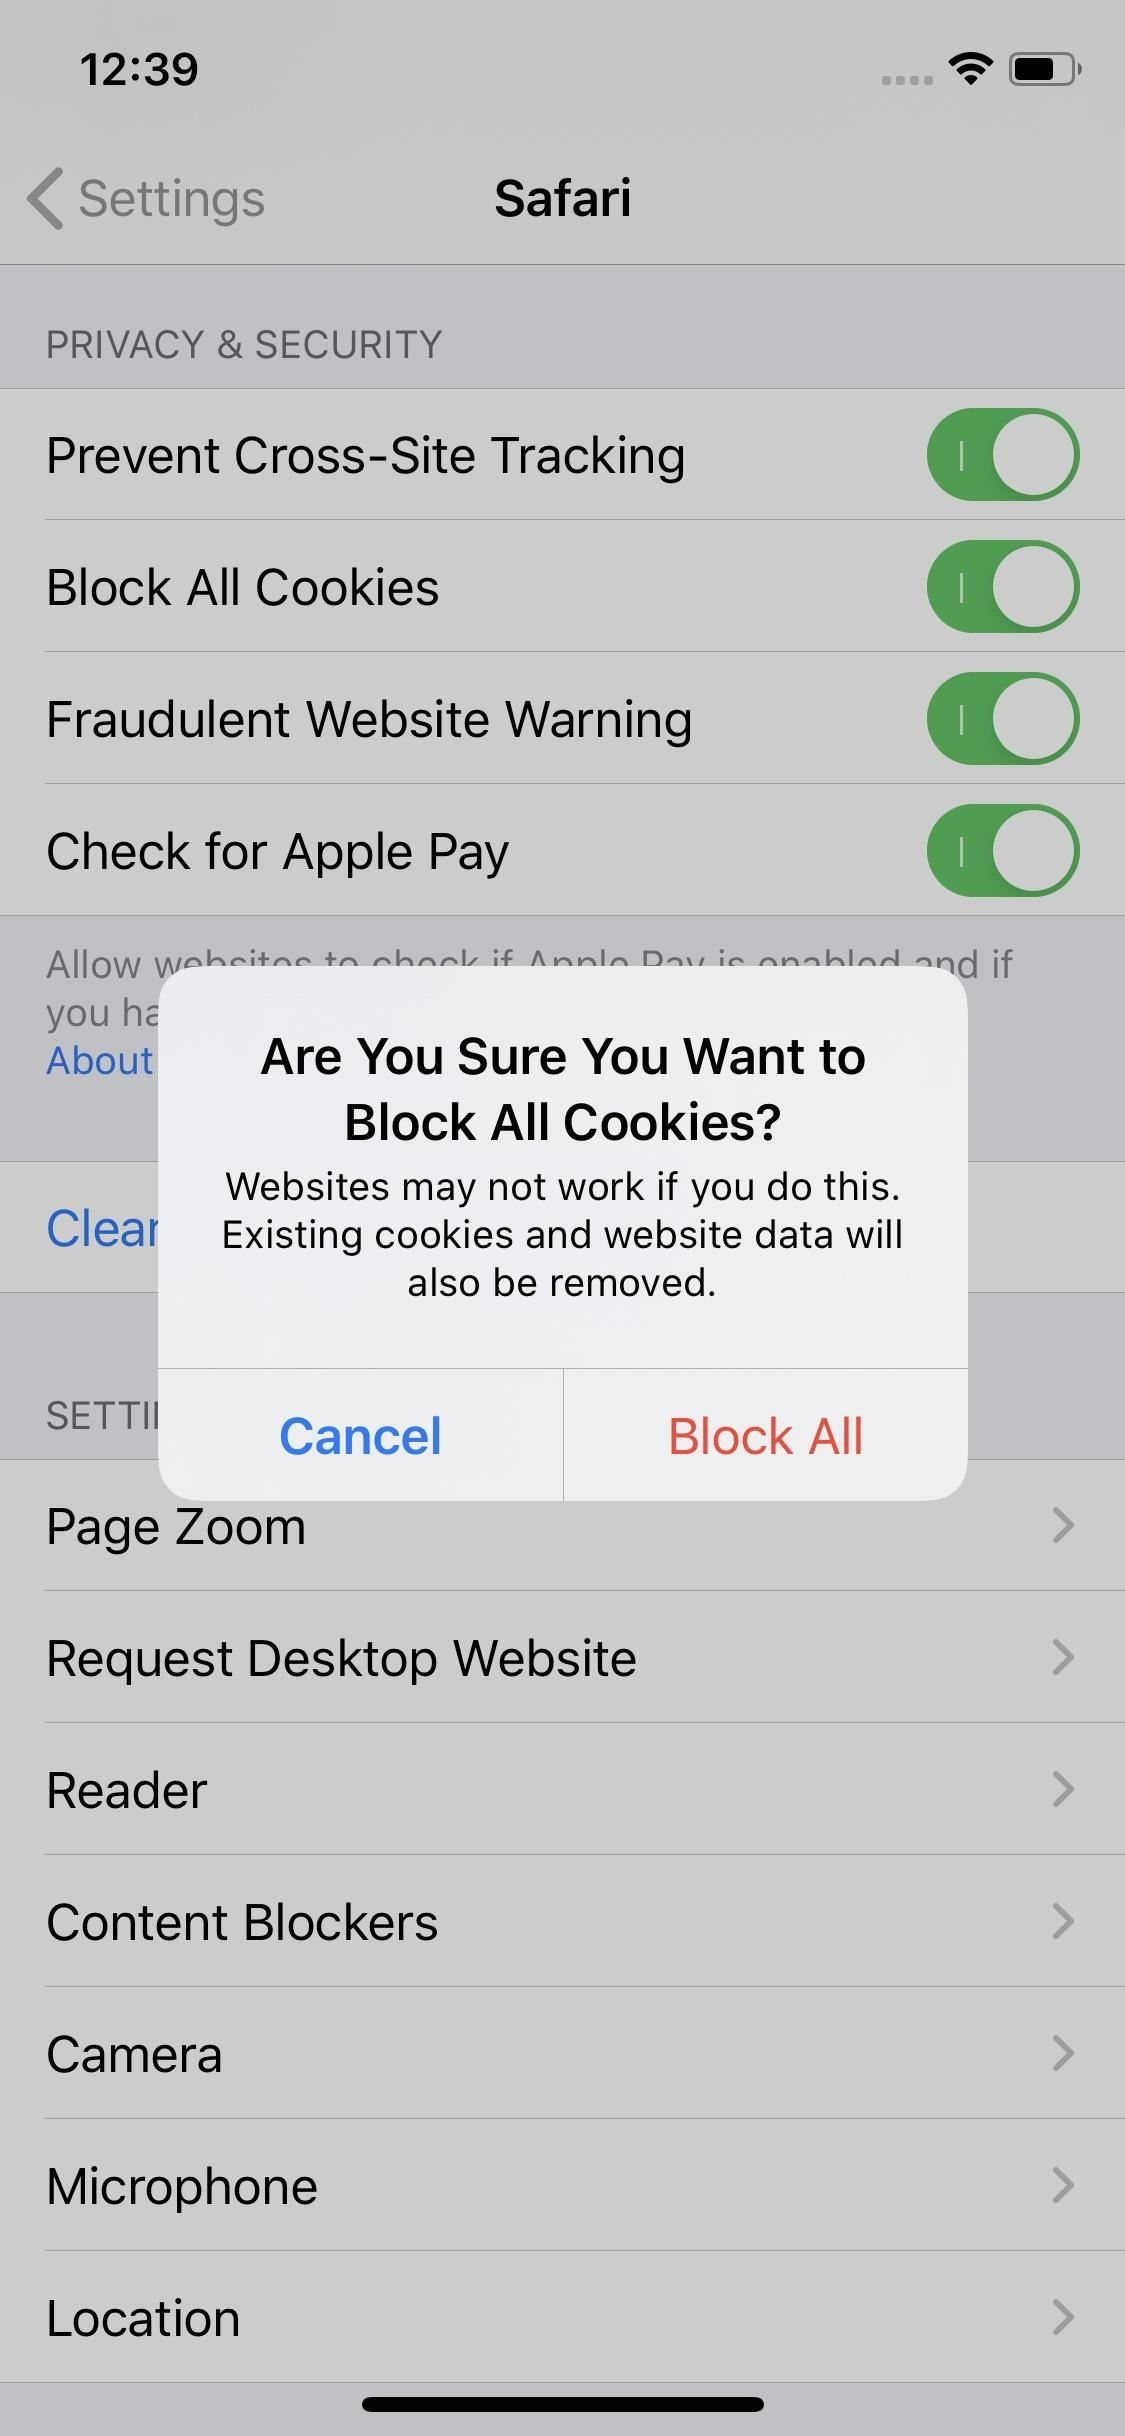 24 Safari Privacy Settings You Need to Check on Your iPhone